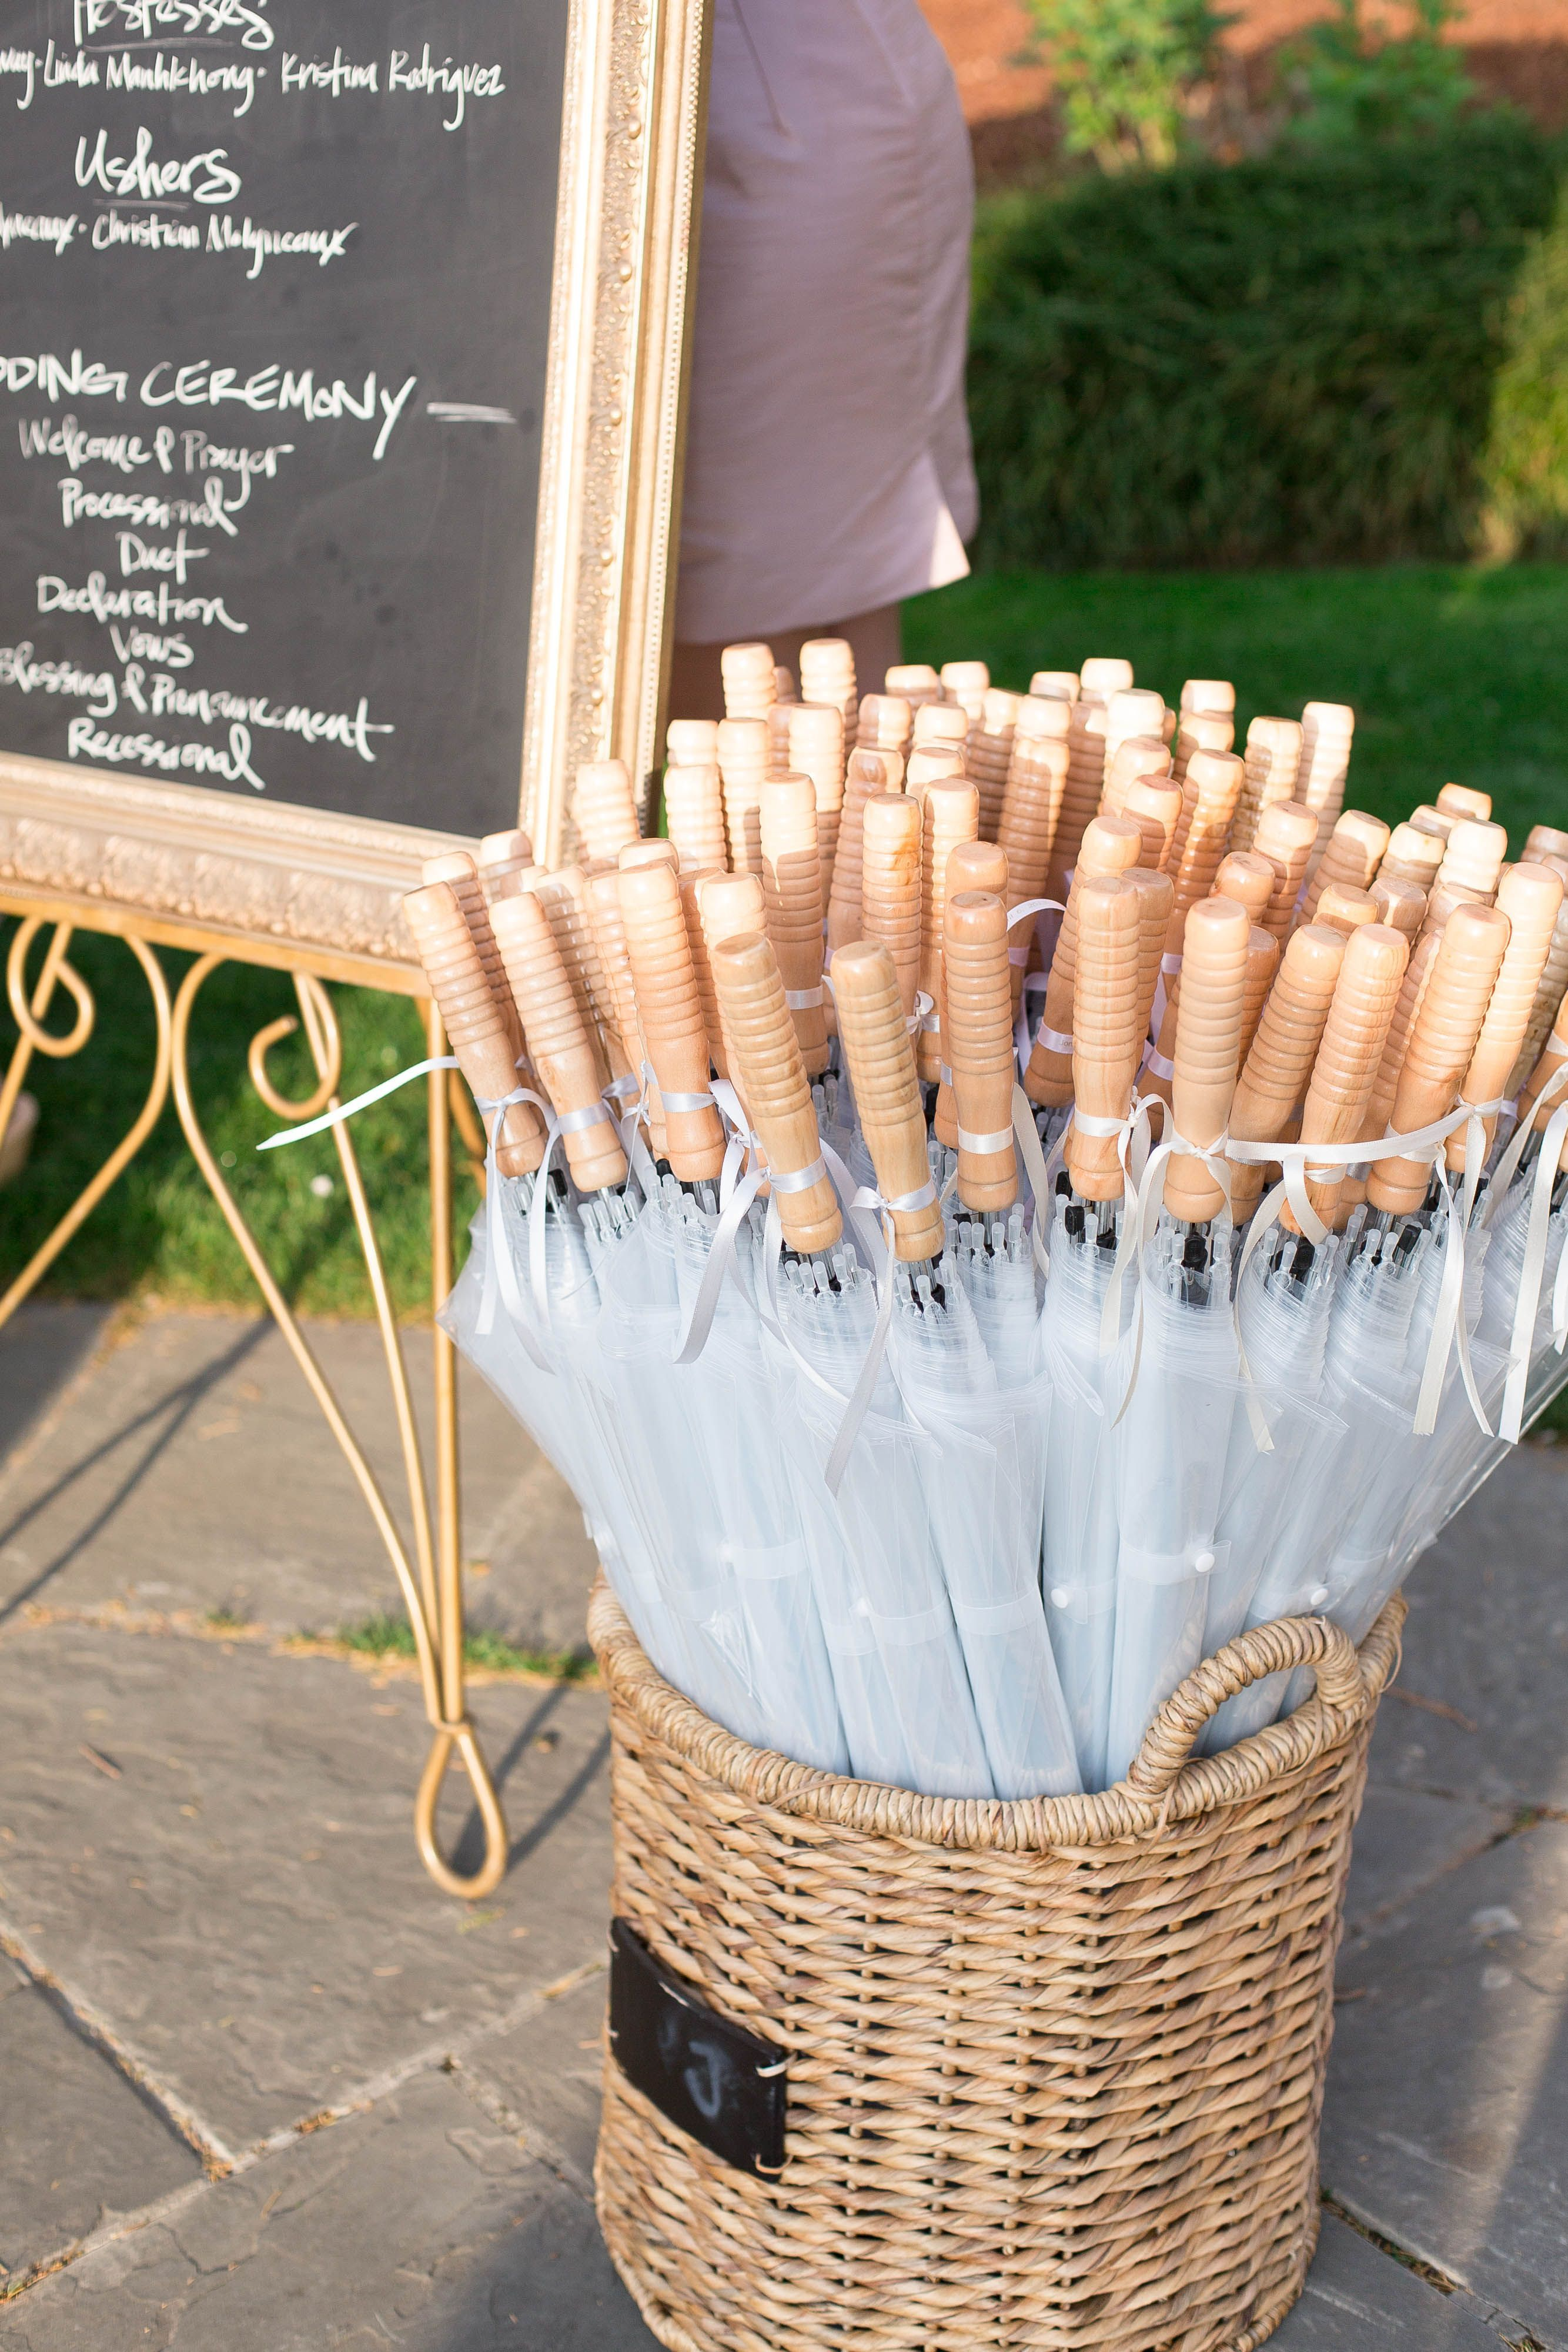 50s wedding decoration ideas  Clear Umbrellas as outdoor wedding favors If it rains these will